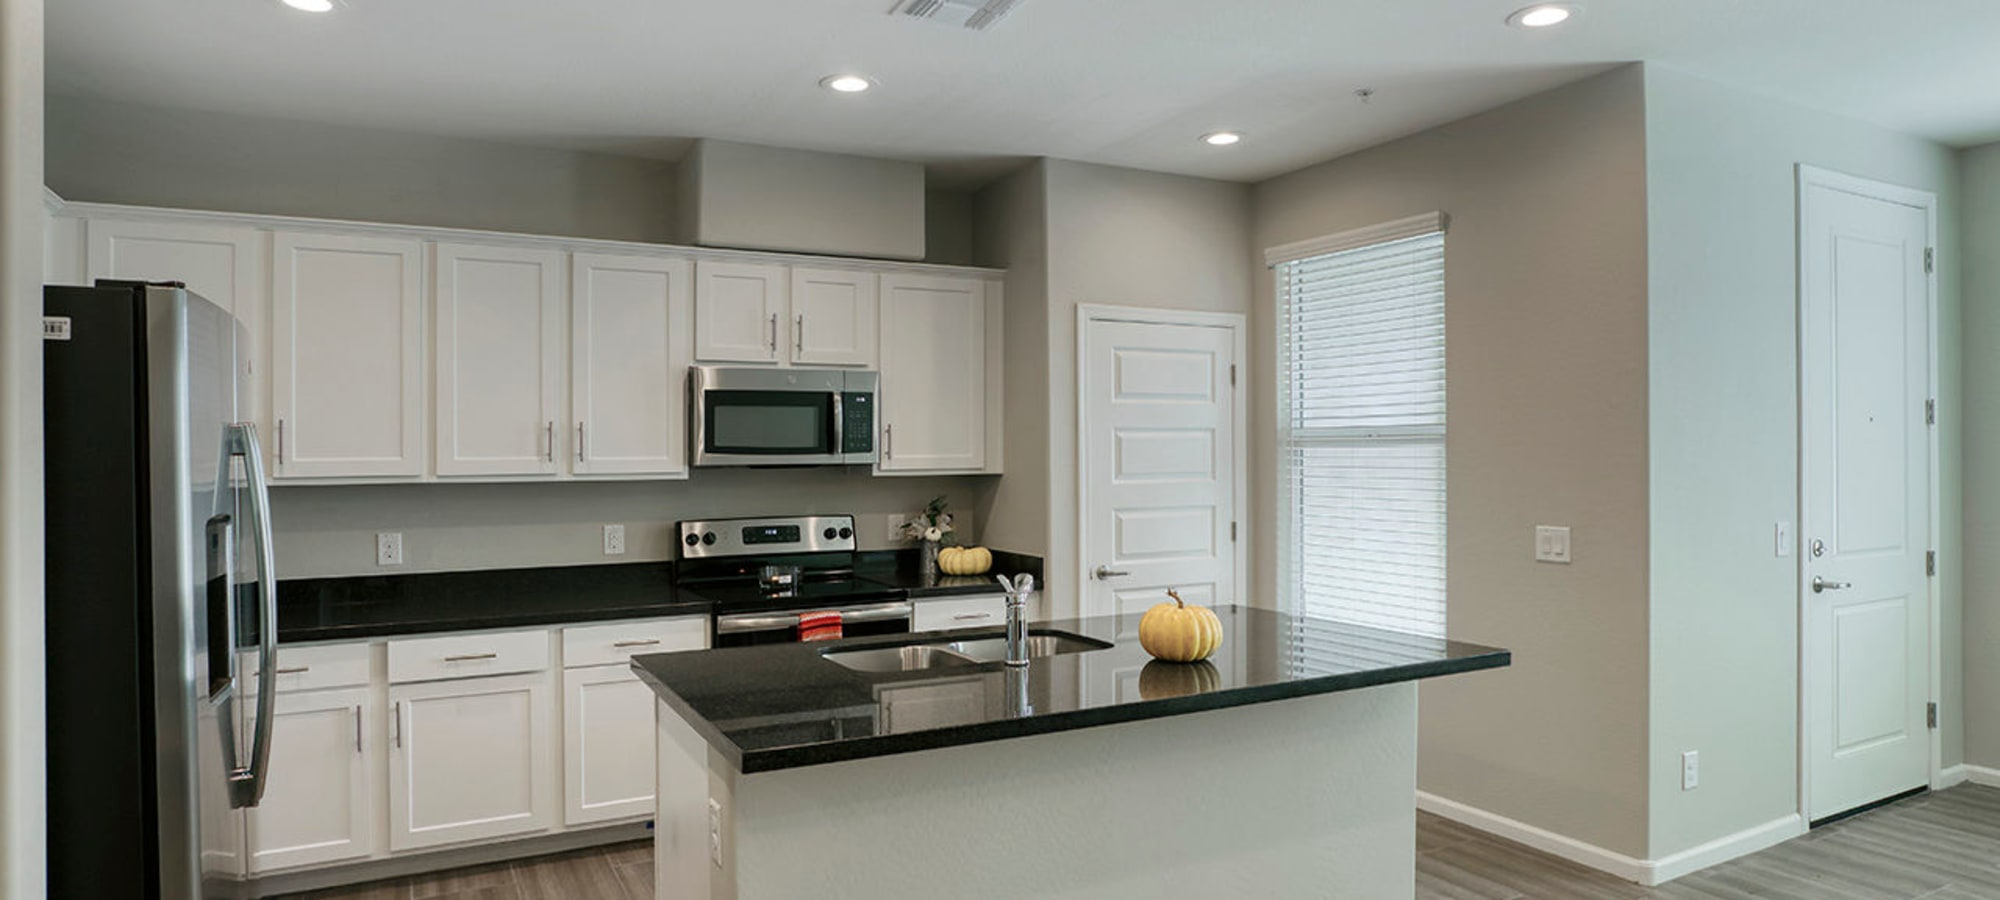 Luxury kitchen with white cabinets at BB Living at Eastmark in Mesa, Arizona